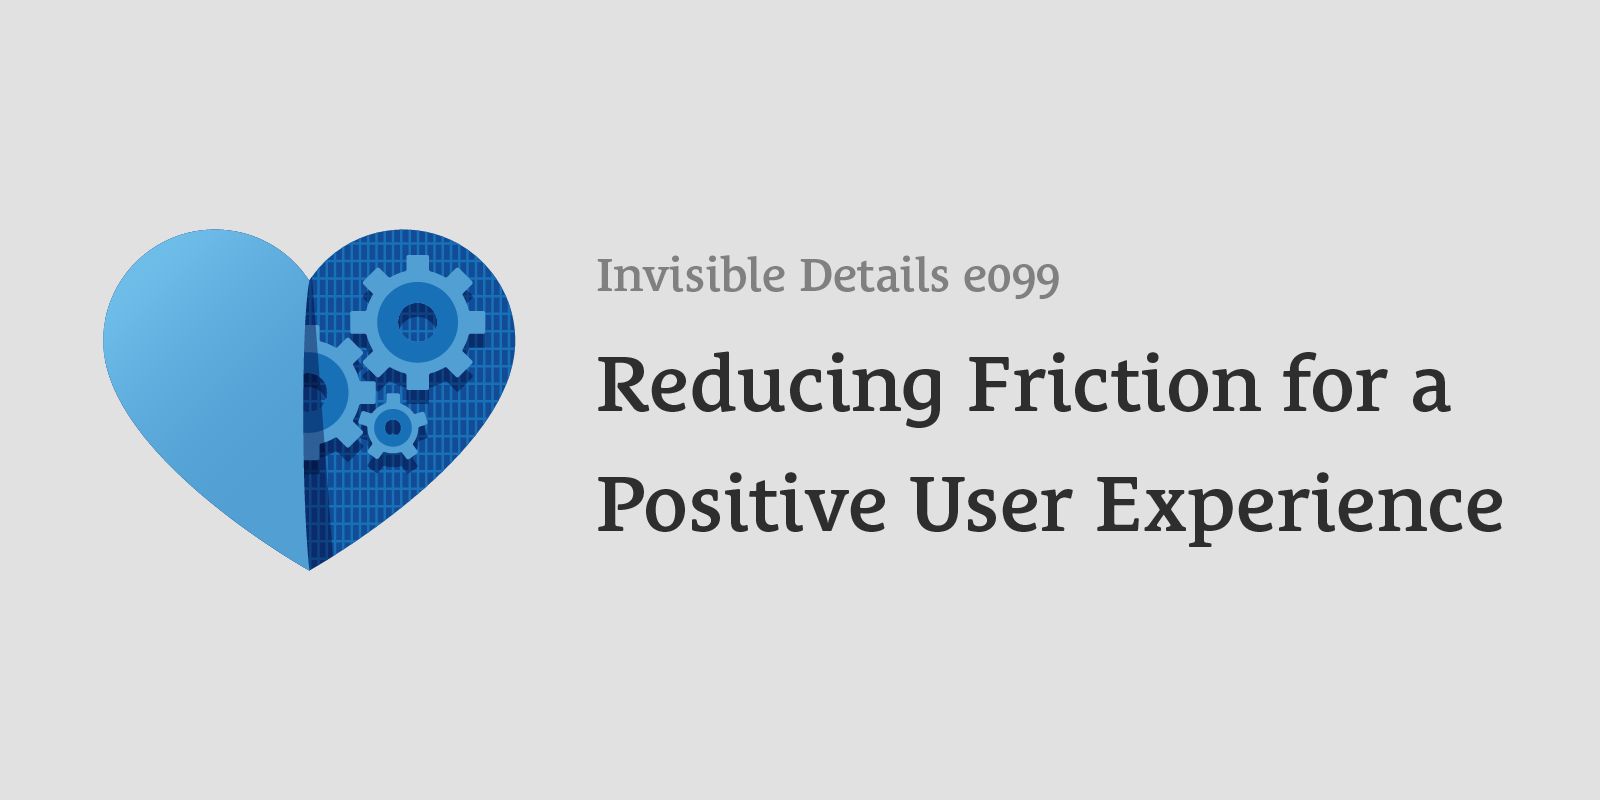 Reducing Friction for a Positive User Experience